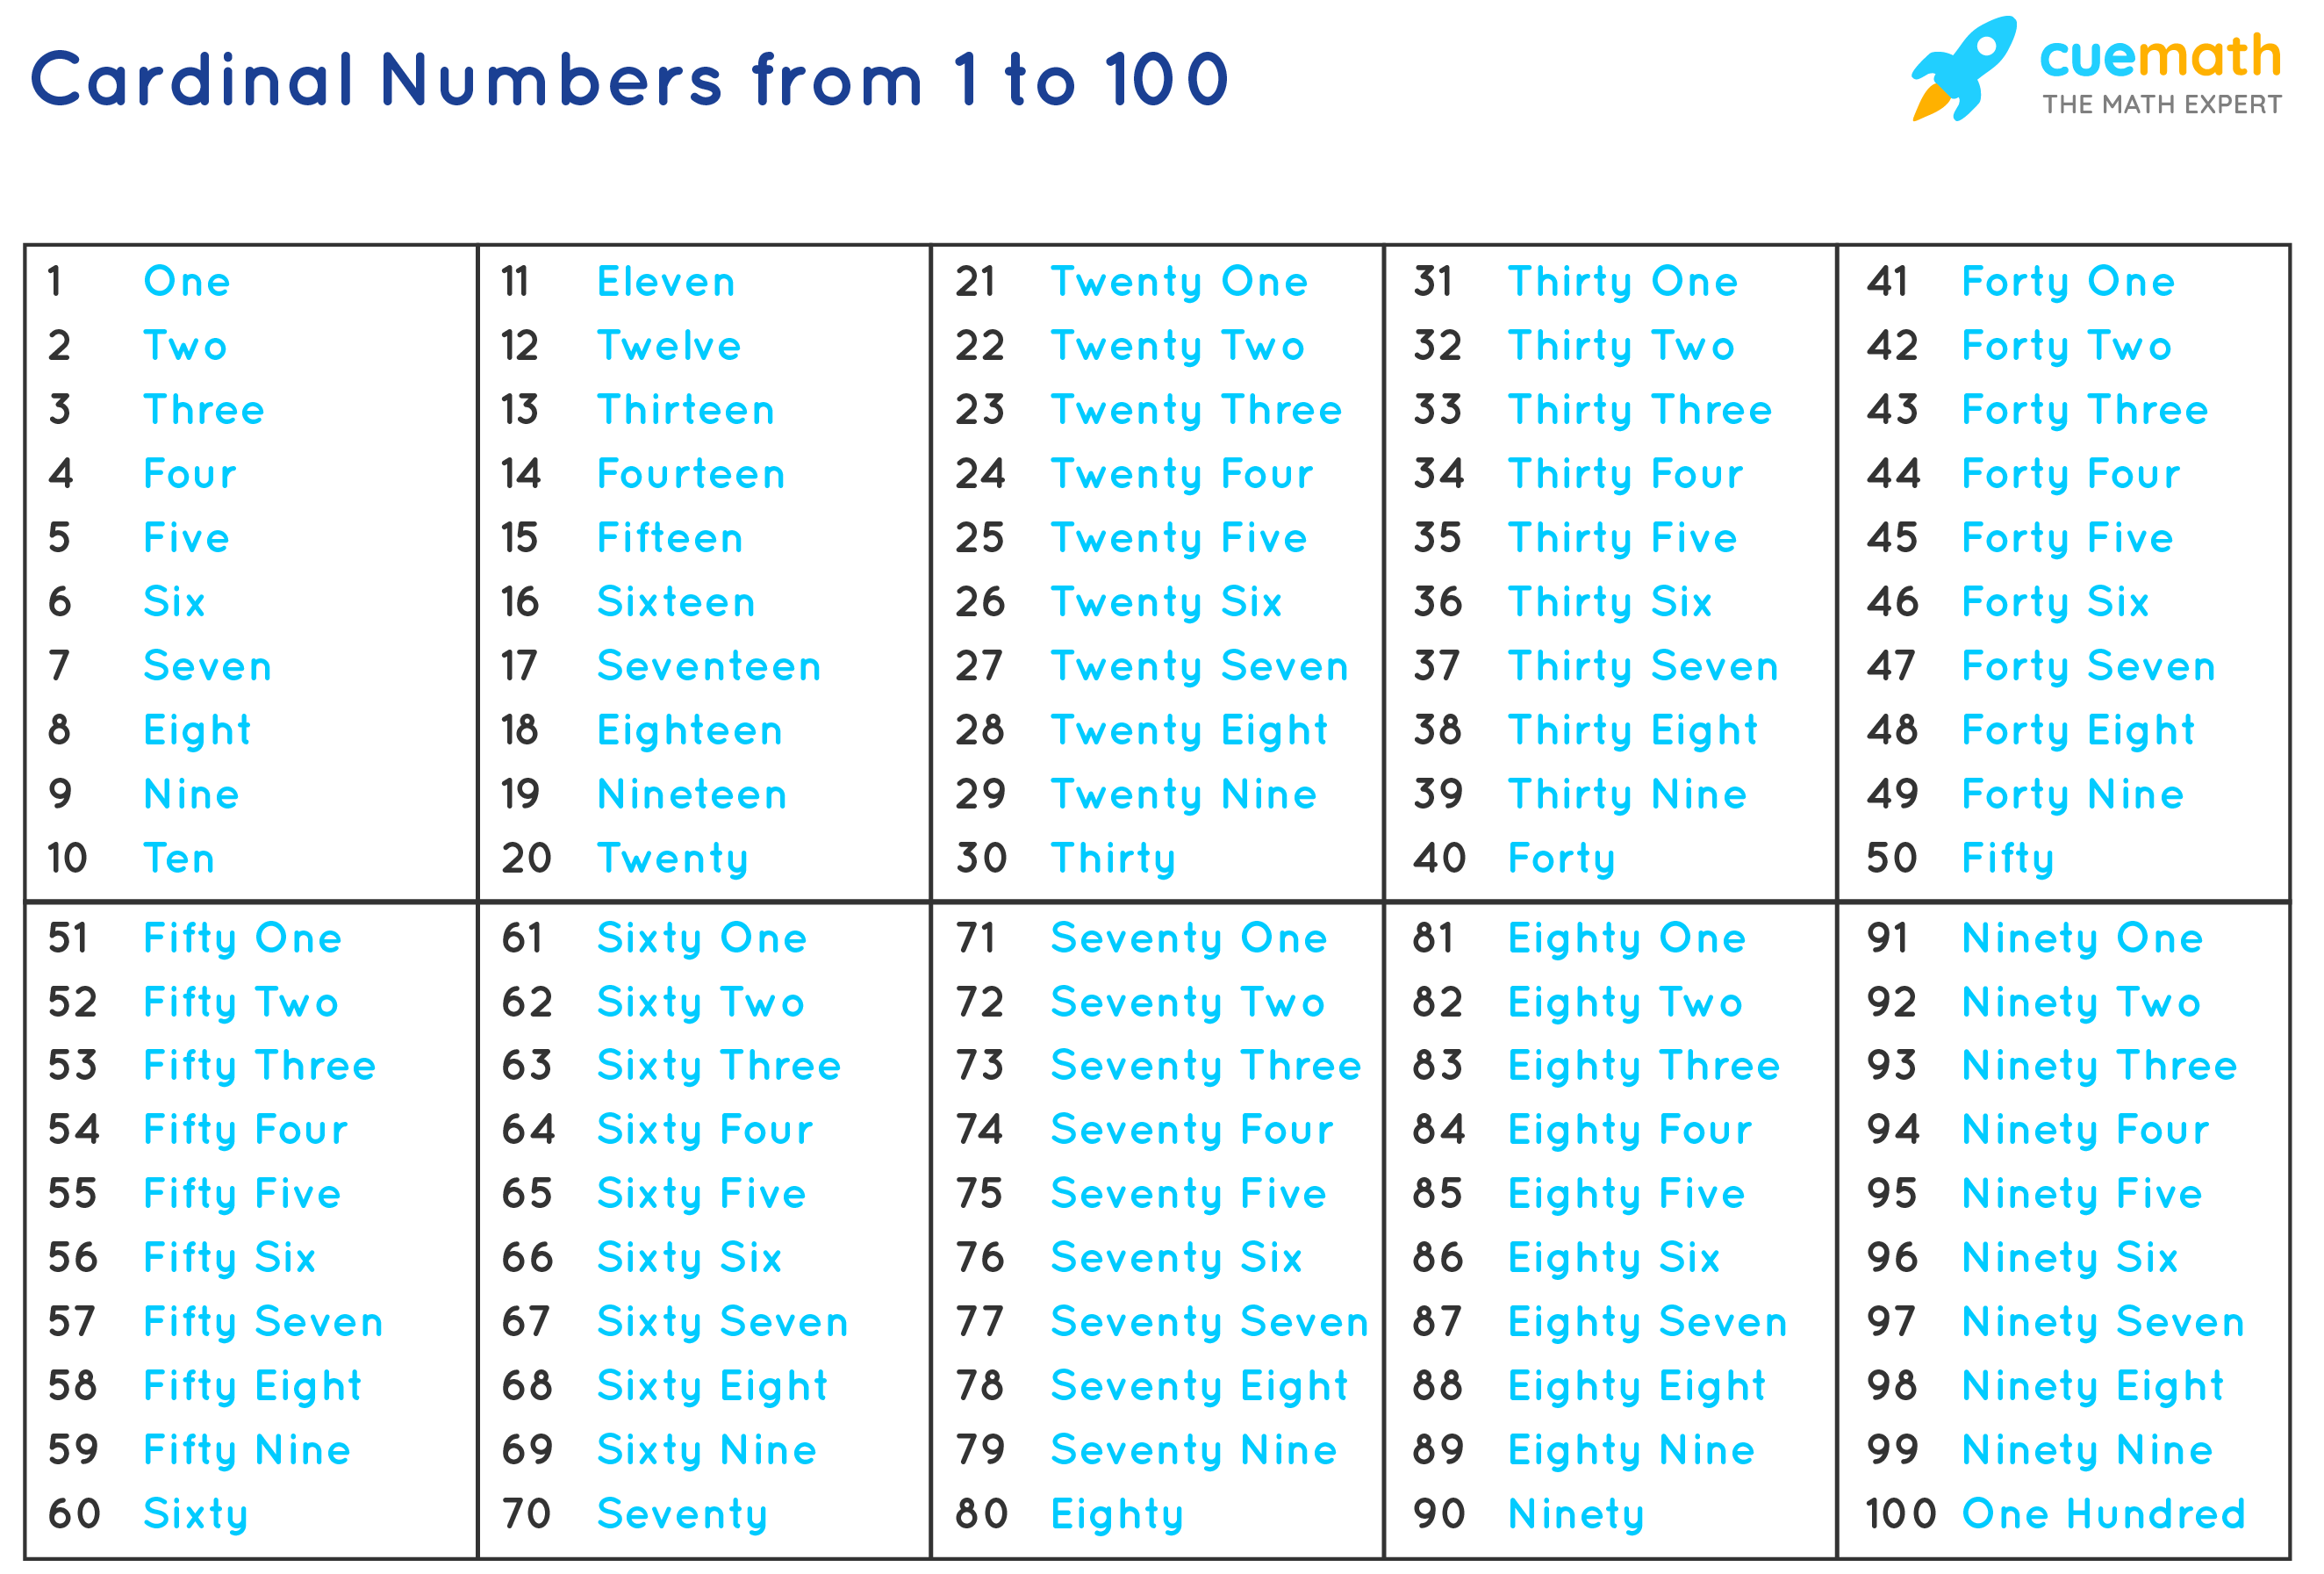 Cardinal Numbers from 1 to 100